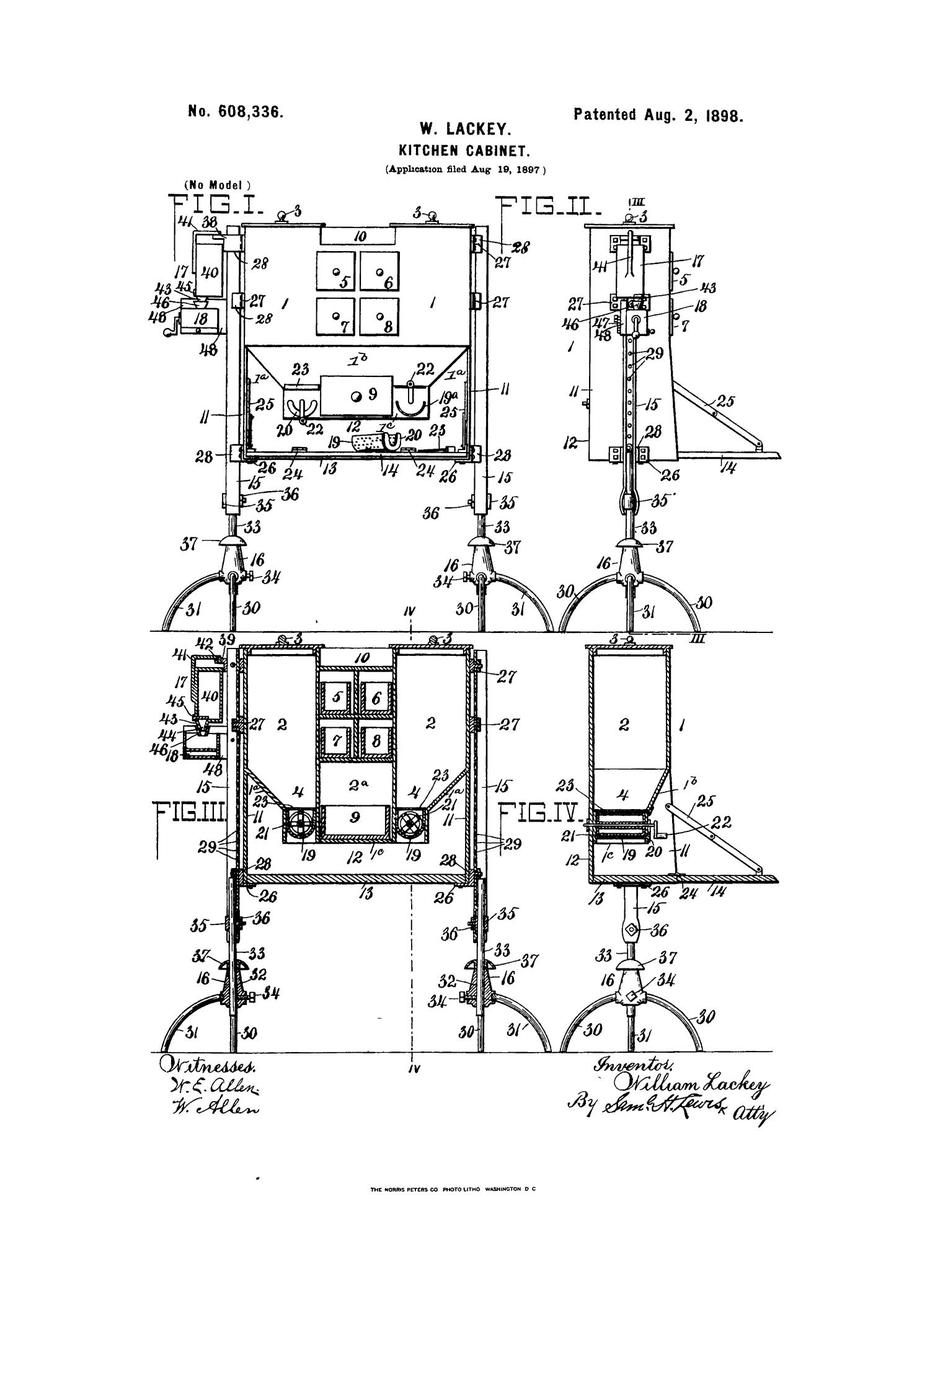 William Lackey - Kitchen Cabinet Patent Drawing